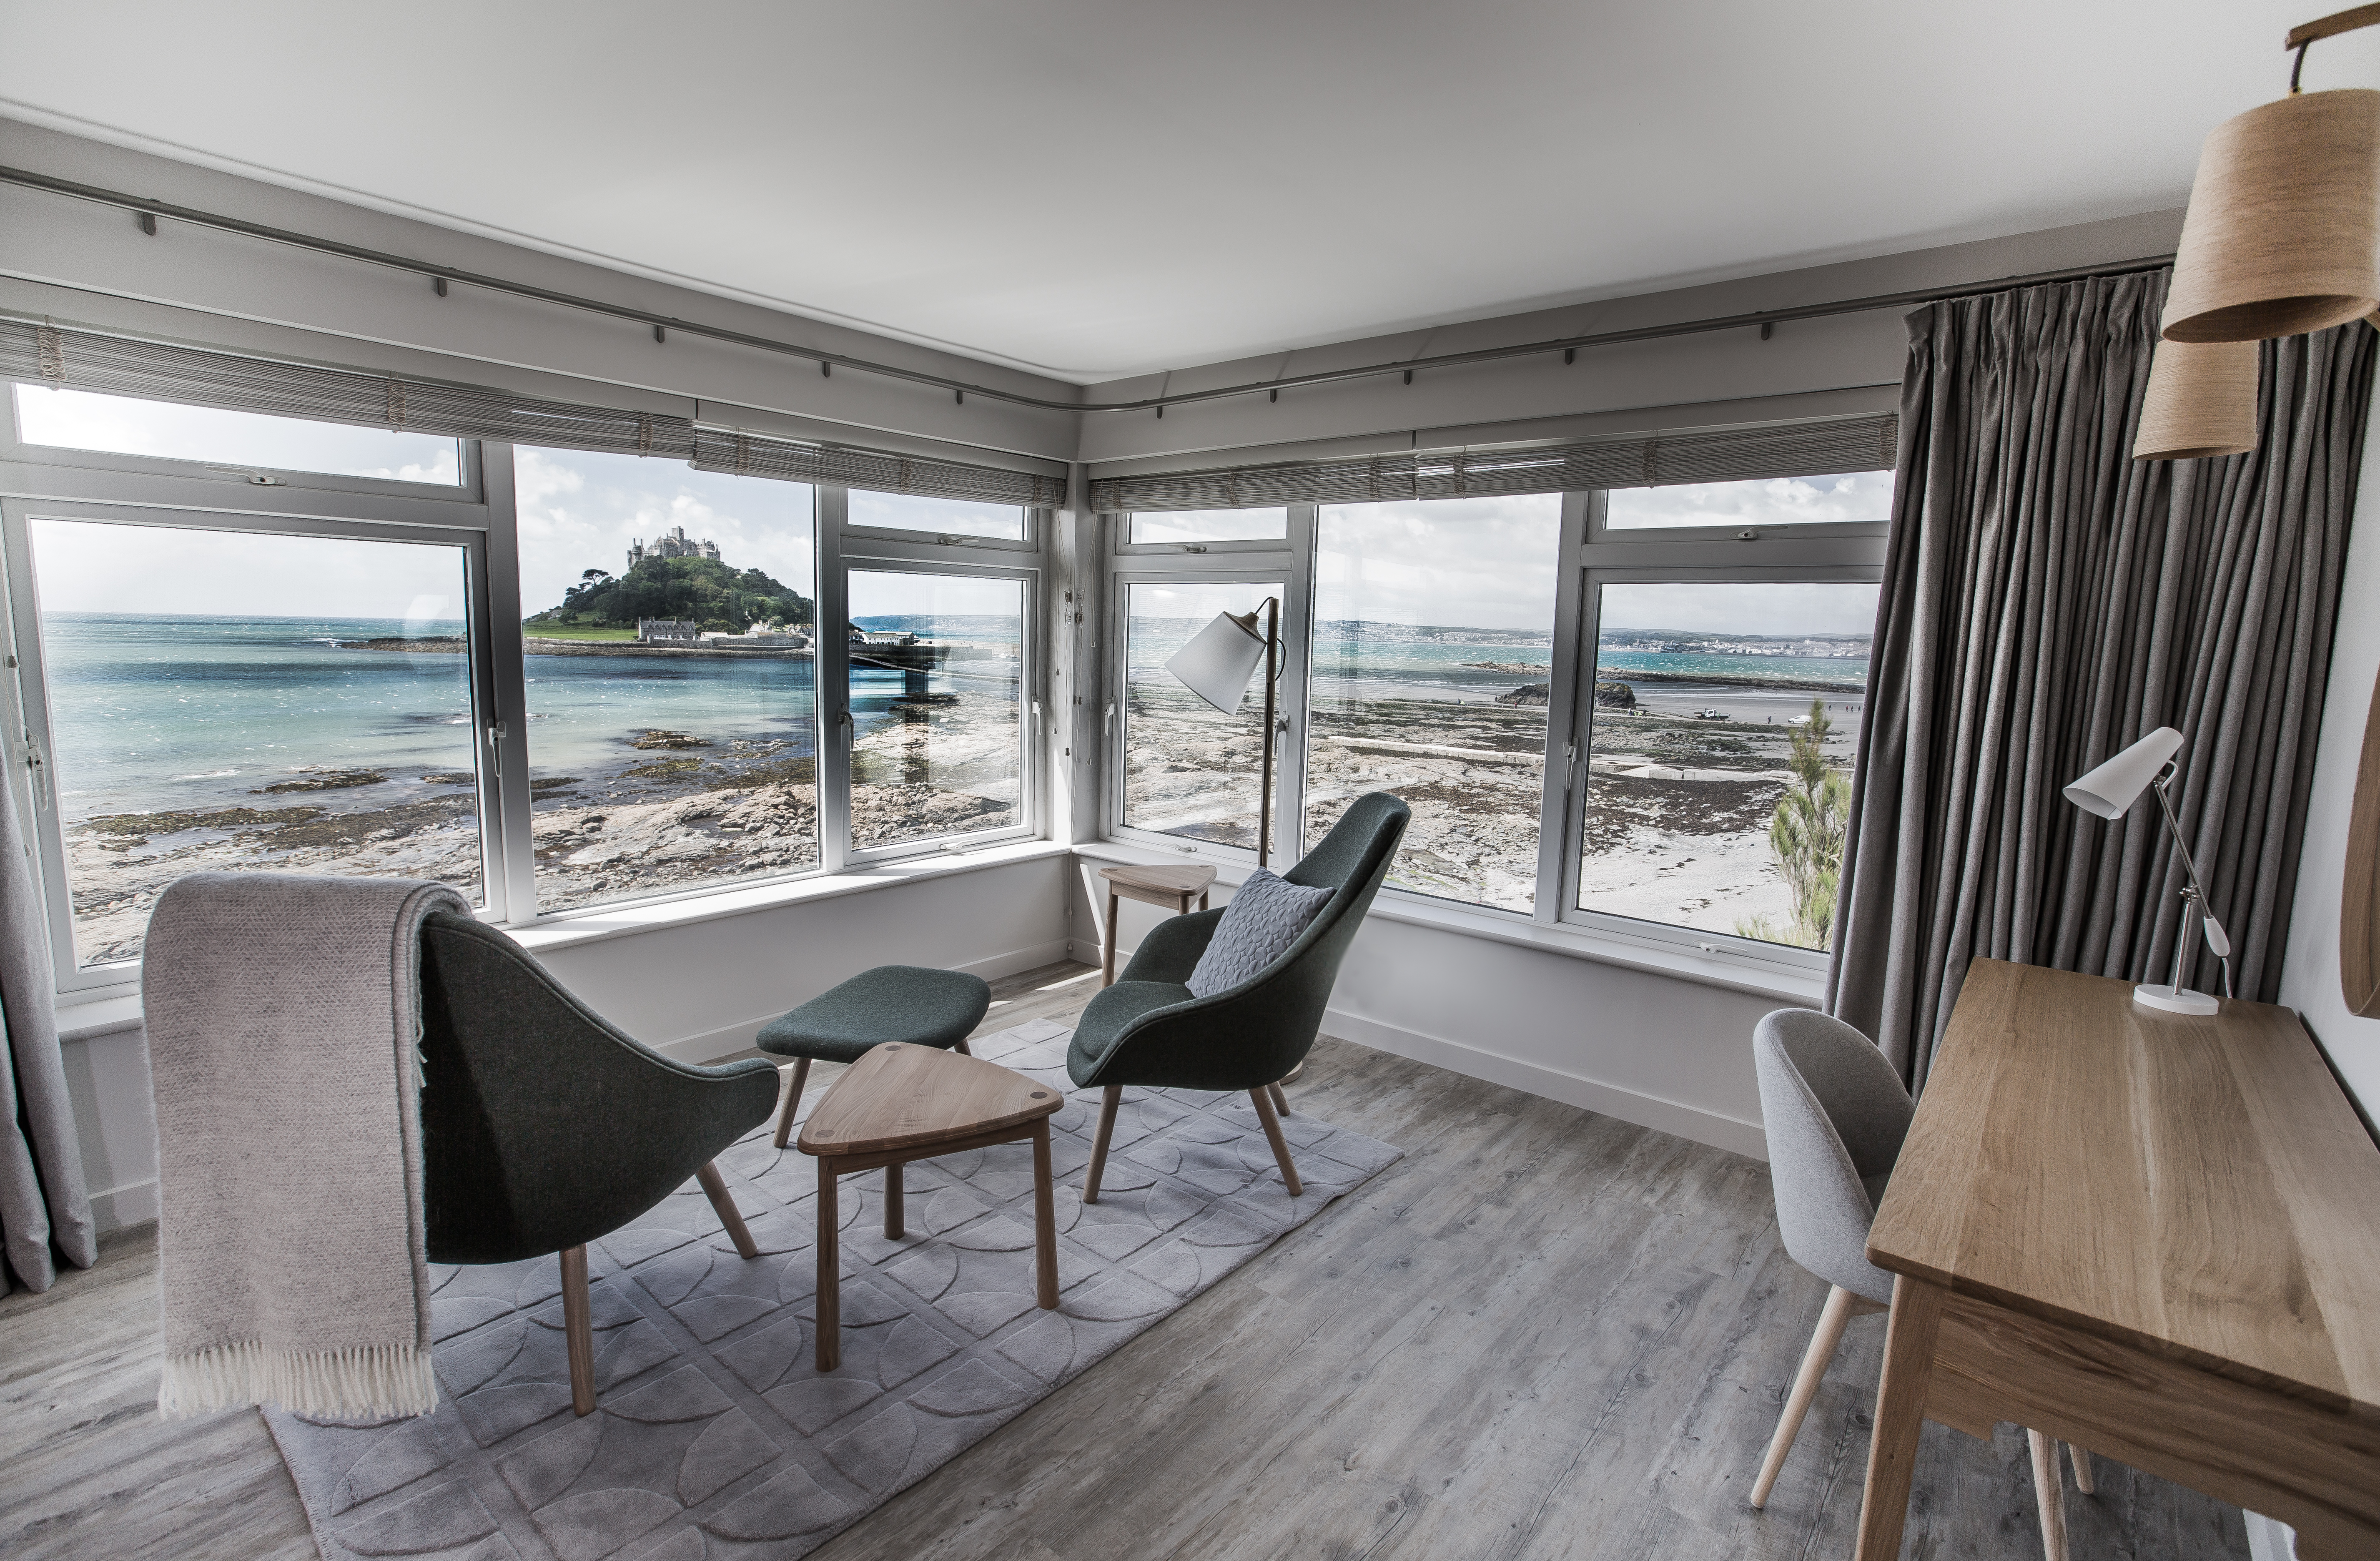 Camilla Banks Interior Design Captains House Marazion (3 of 143)